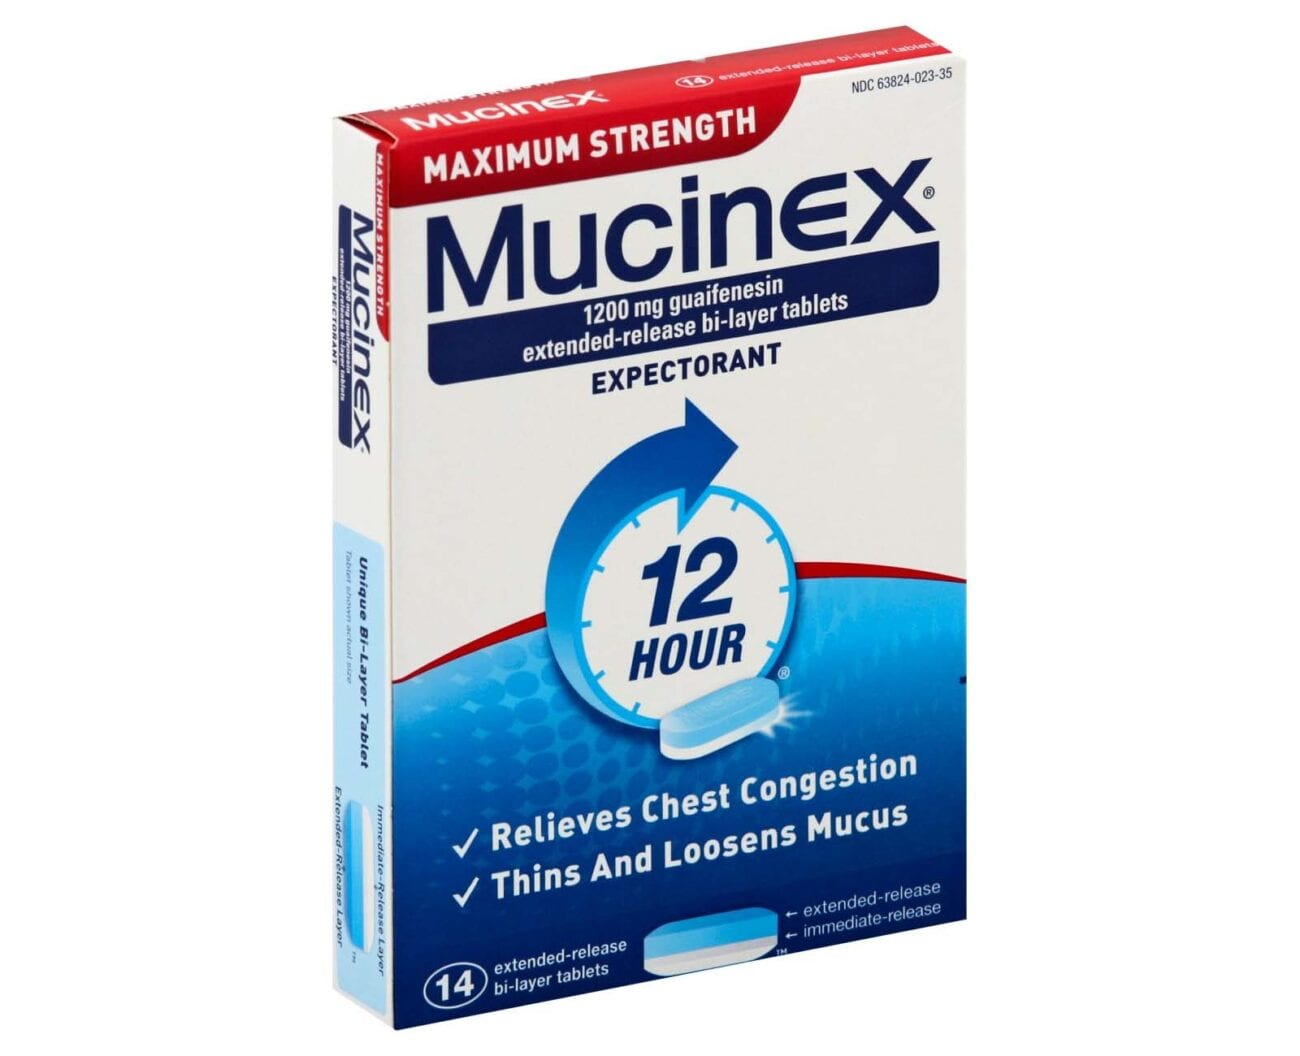 Here's why TikTok is having a mini-freakout over the cold medicine Mucinex. What are the side effects? Let's find out!